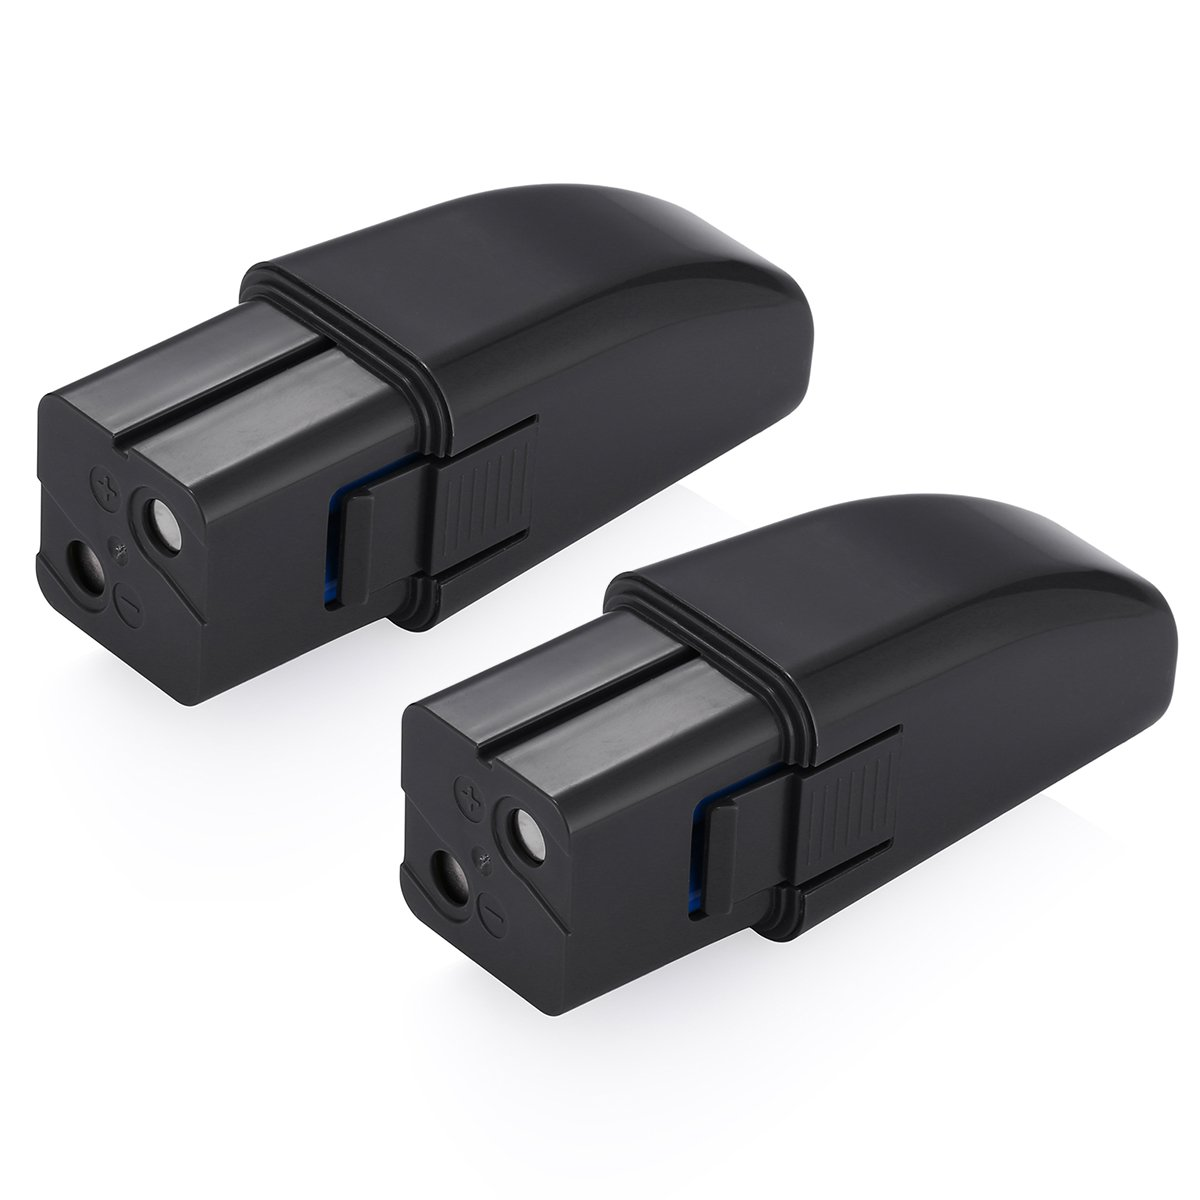 Powerextra 2 Pack 7.2V 2000mAh Ni-MH Replacement Battery for Ontel Swivel Sweeper G1 & G2